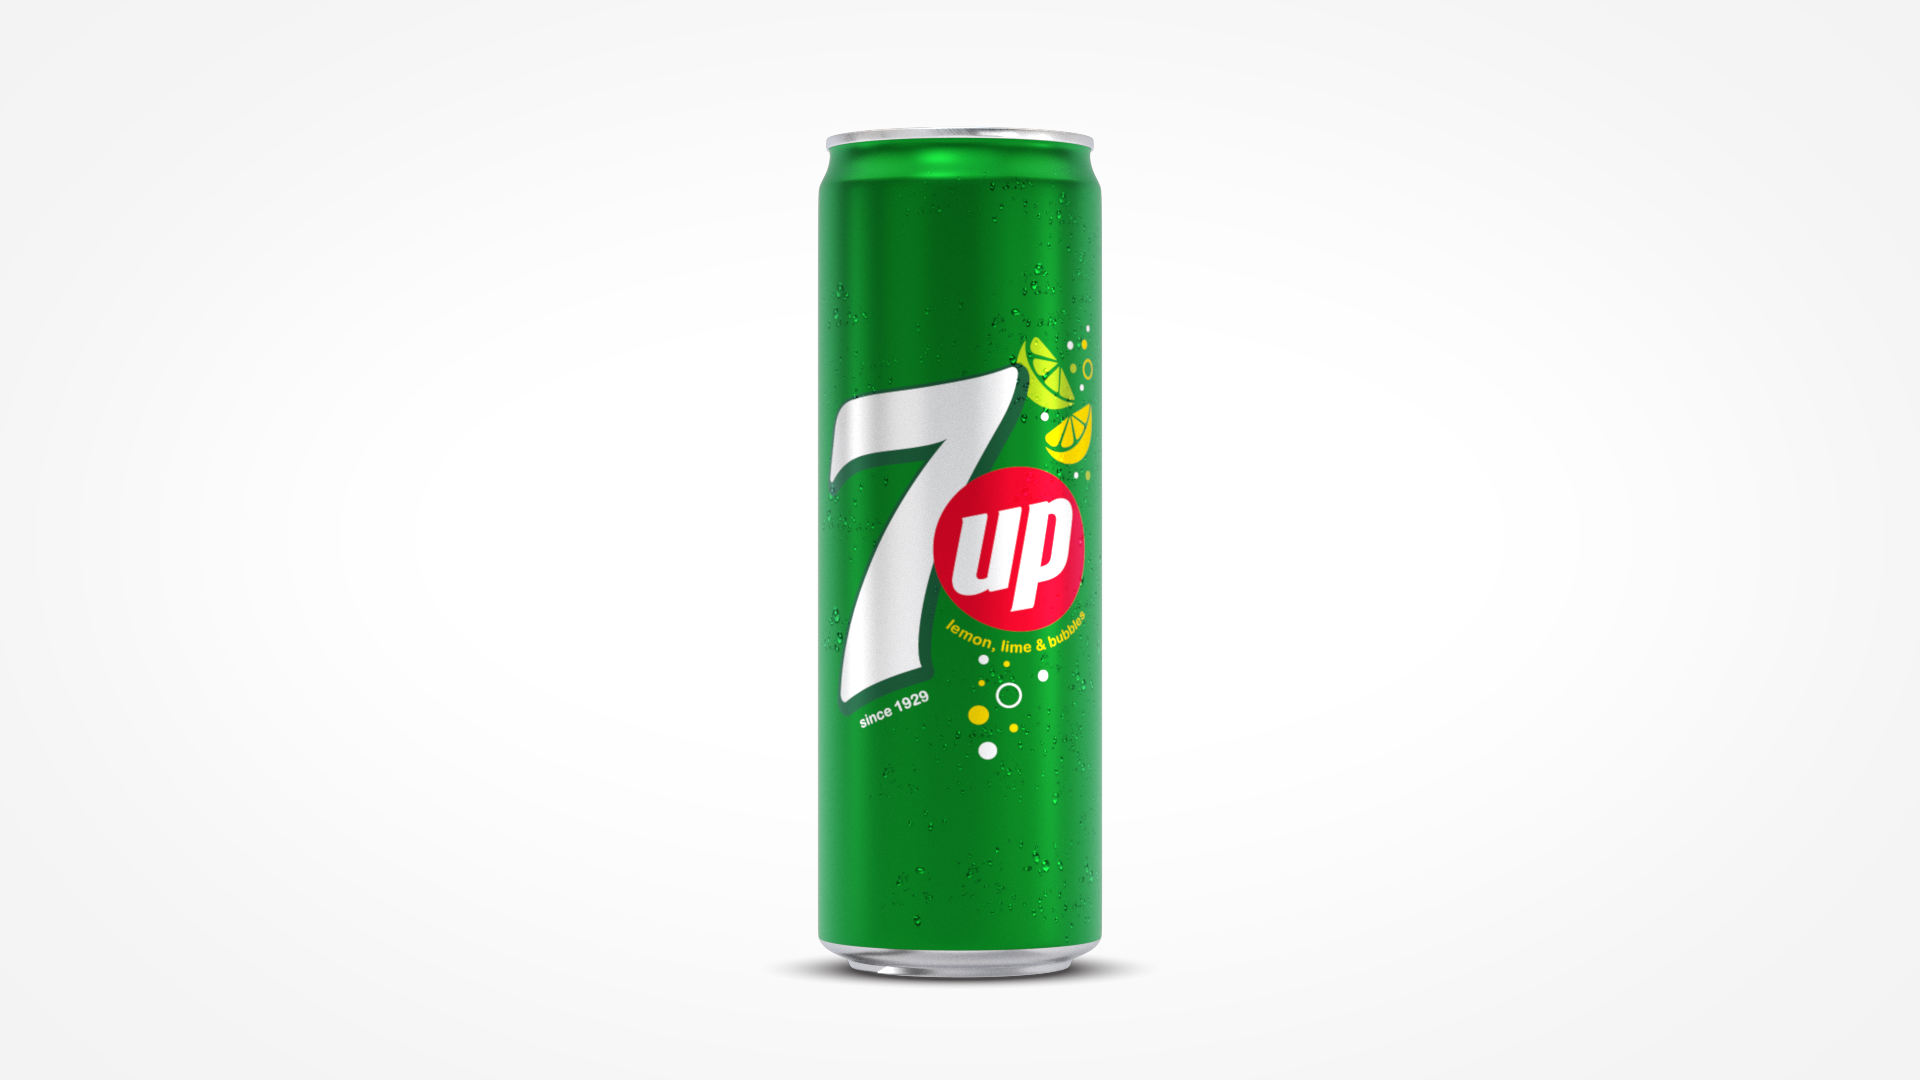 Web_7up_00000.png